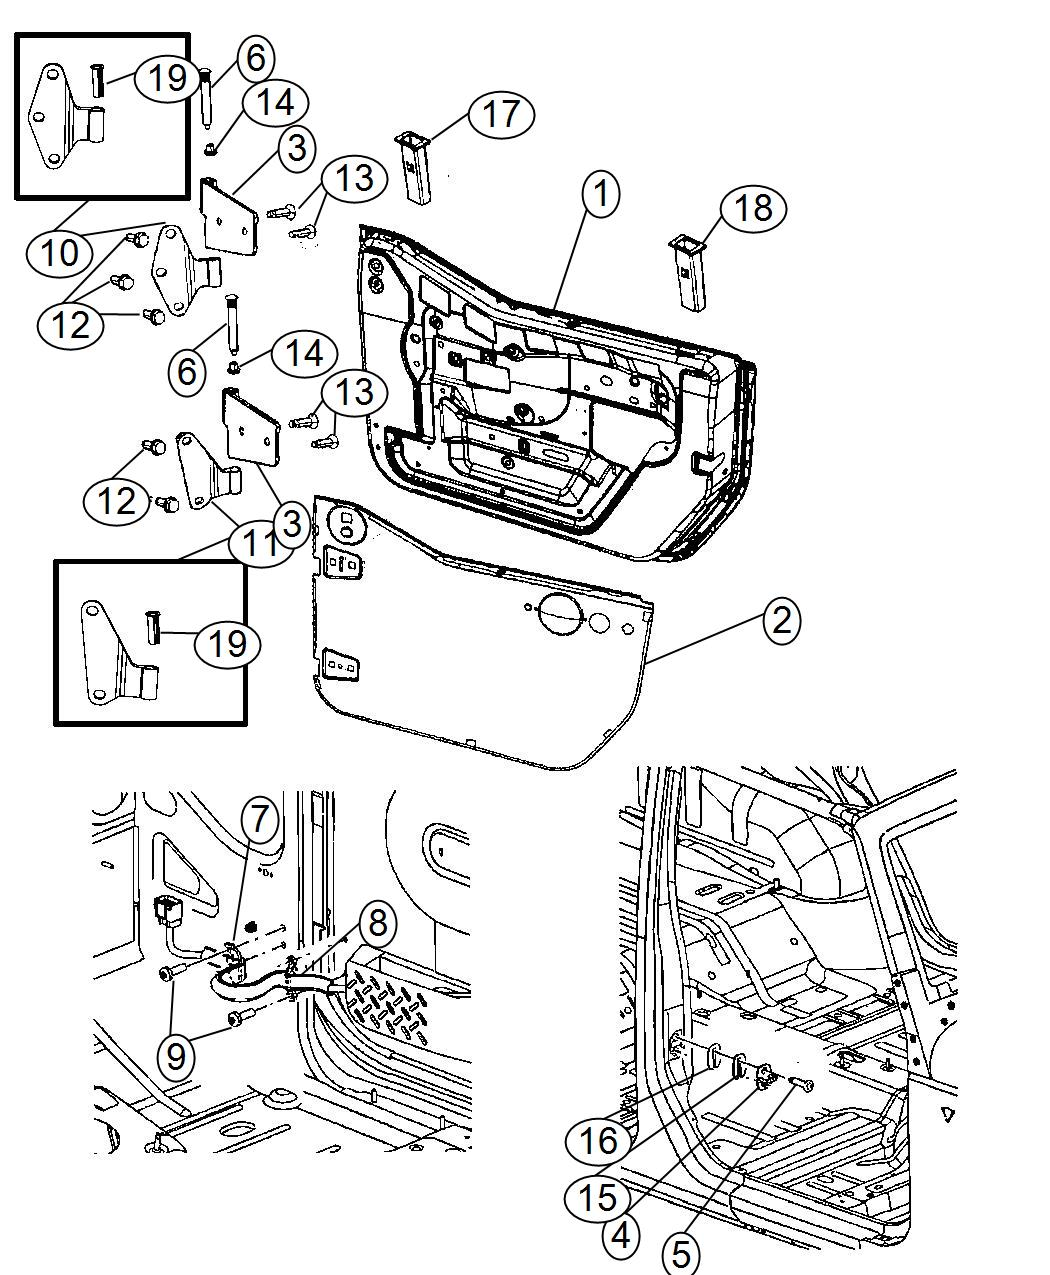 2014 Jeep Wrangler Hinge. Body half. Right. Door, hinges